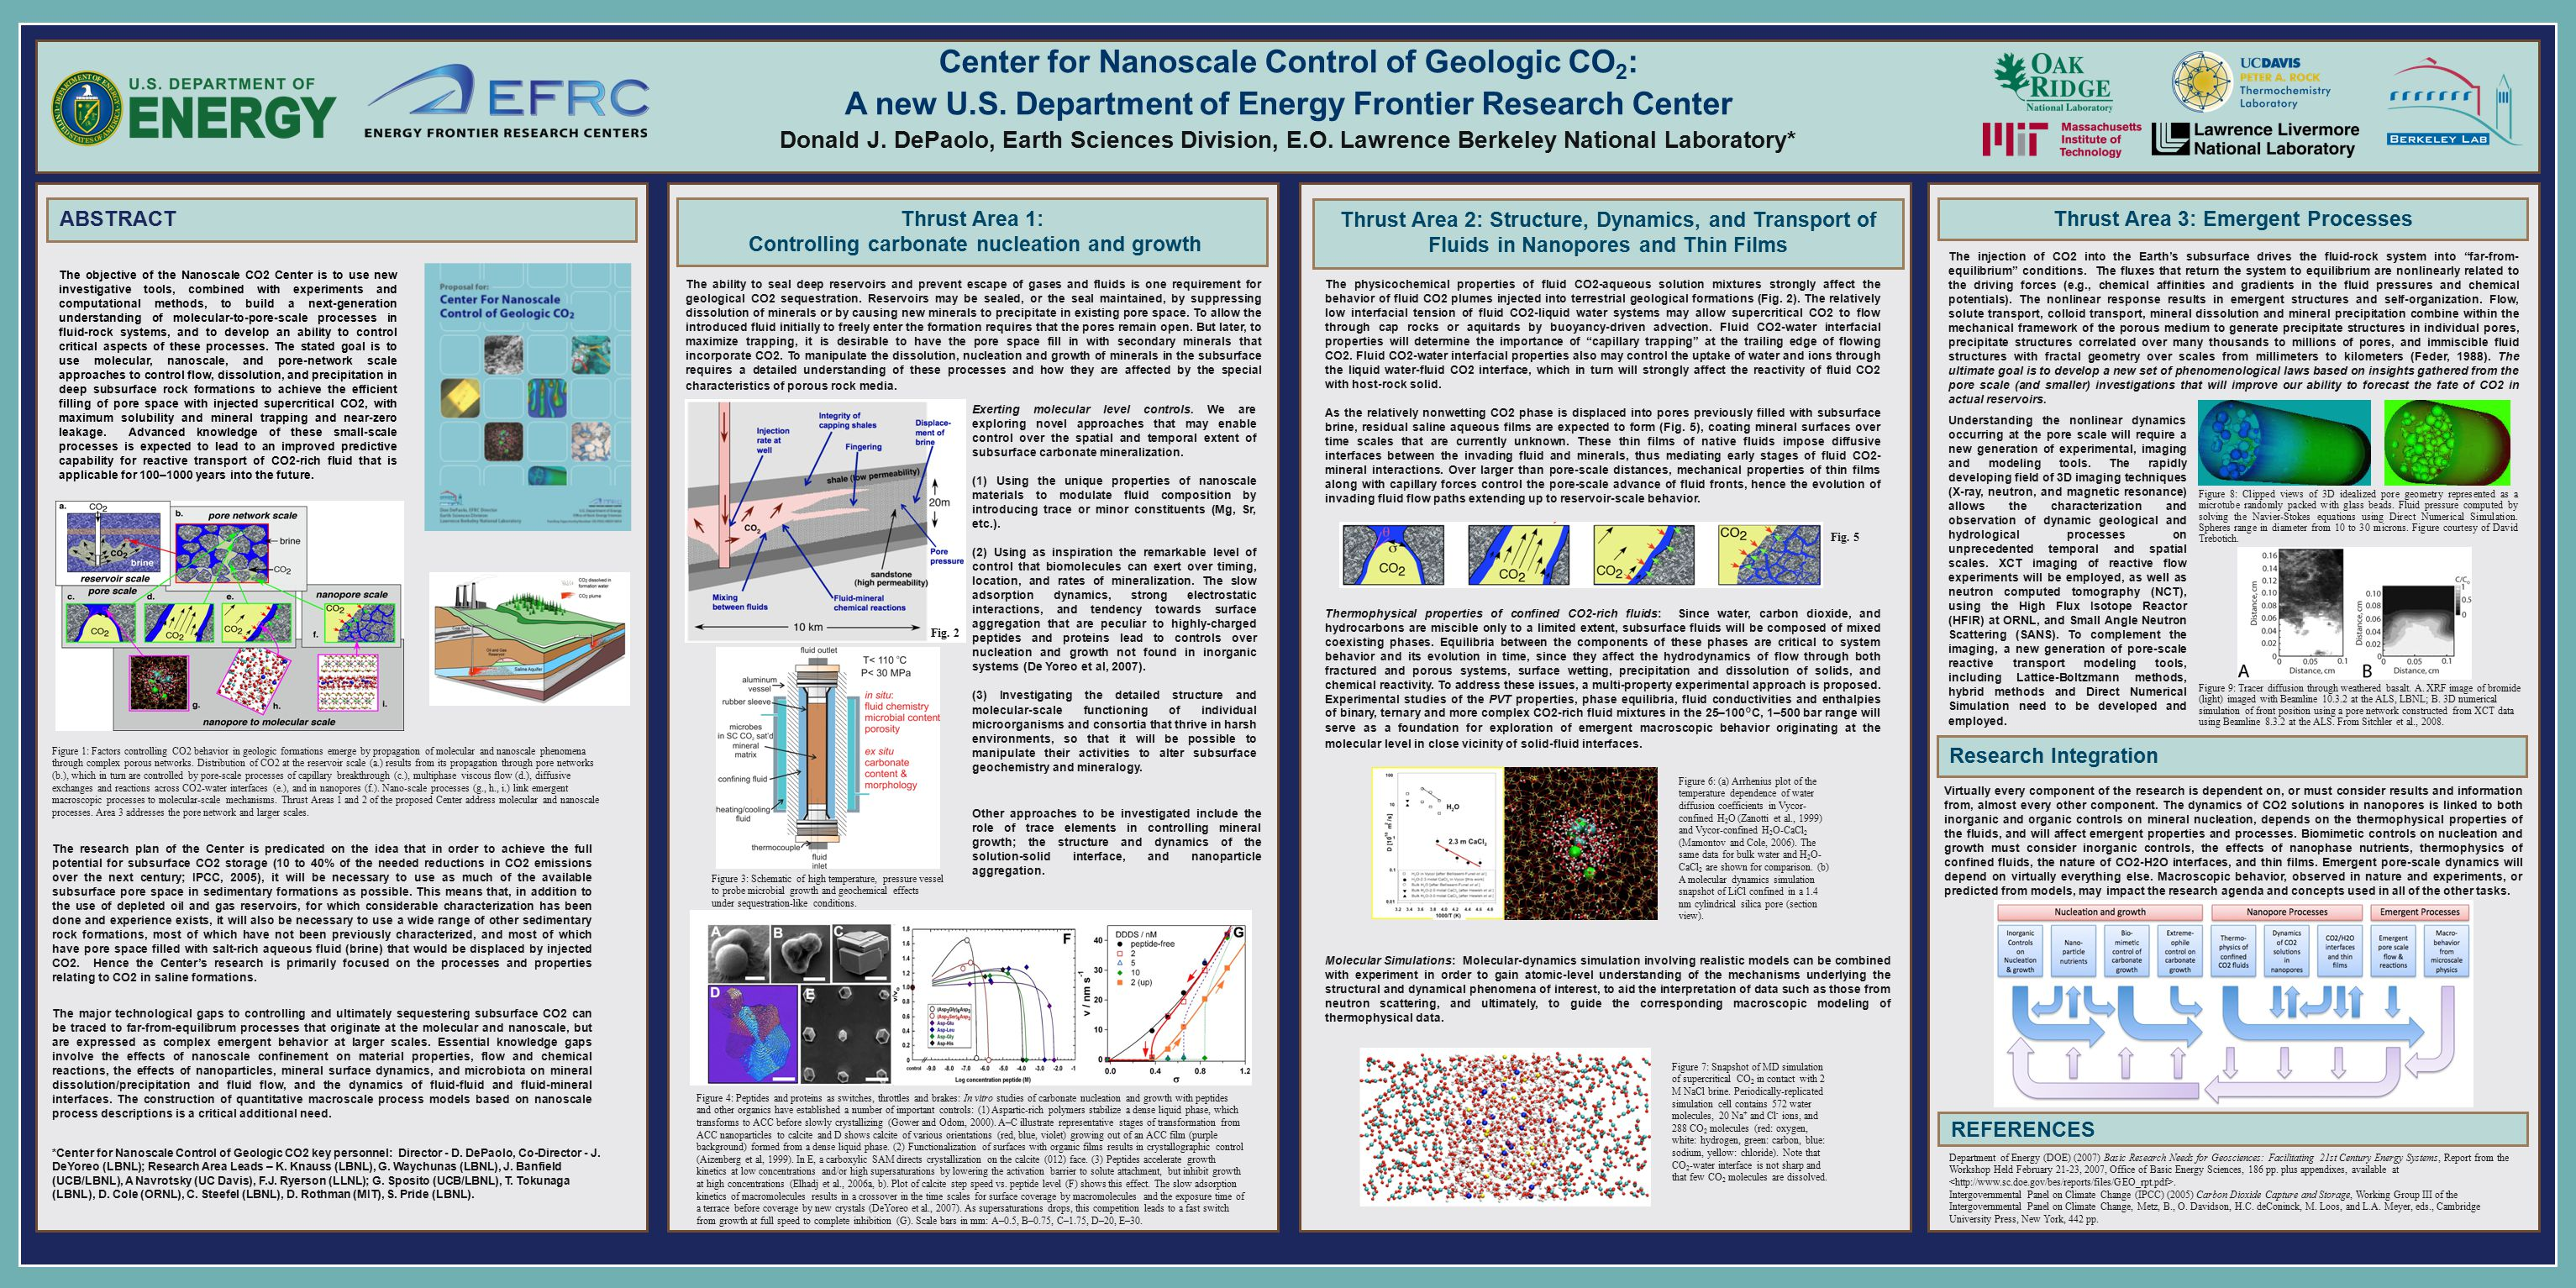 Center for Nanoscale Control of Geologic CO 2 : A new U.S. Department of Energy Frontier Research Center Donald J. DePaolo, Earth Sciences Division, E